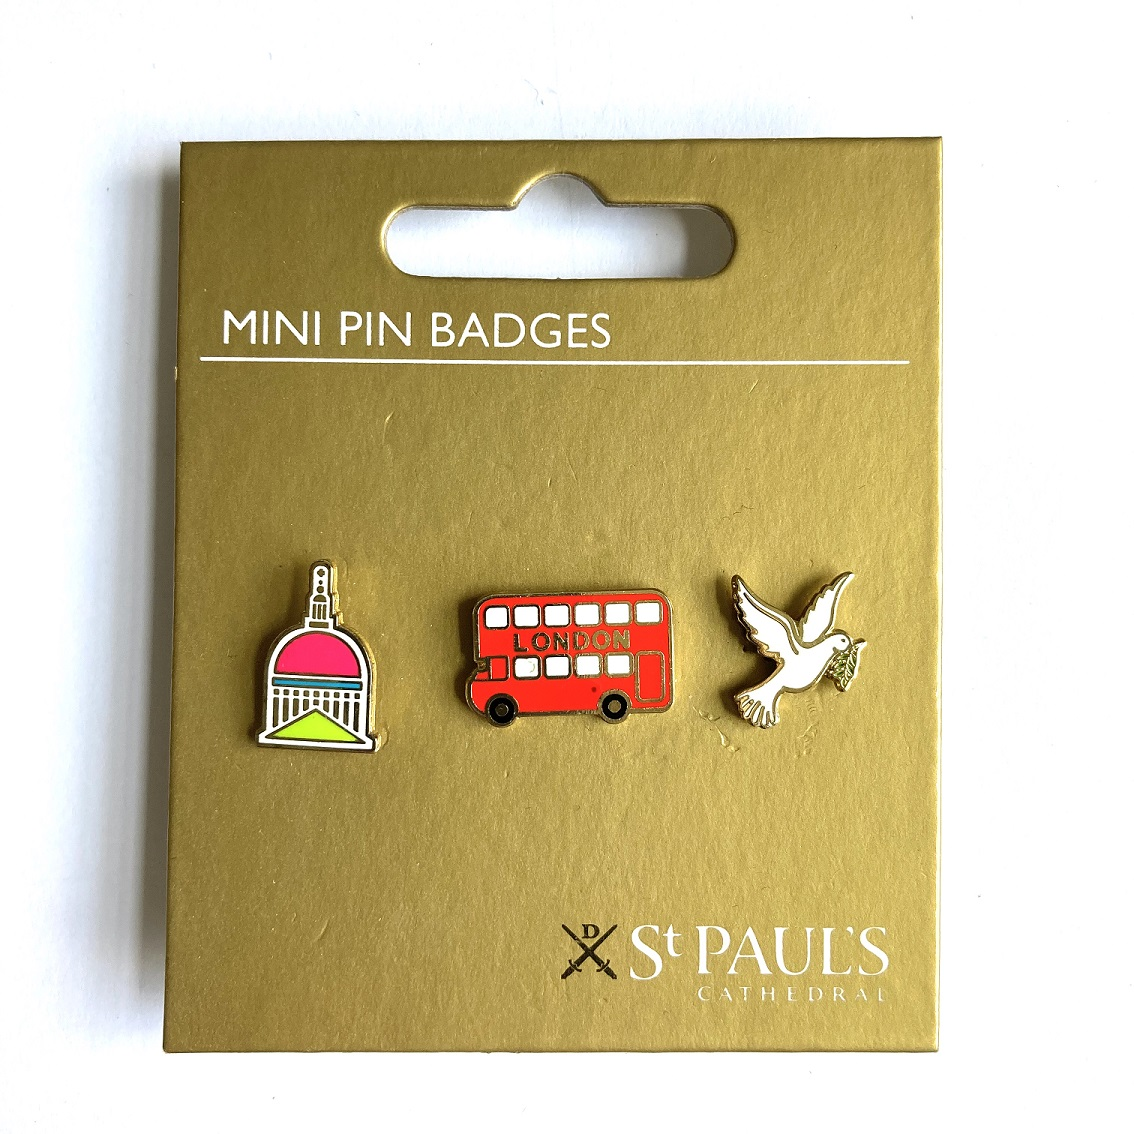 Set on mini St Paul's Cathedral pin badges